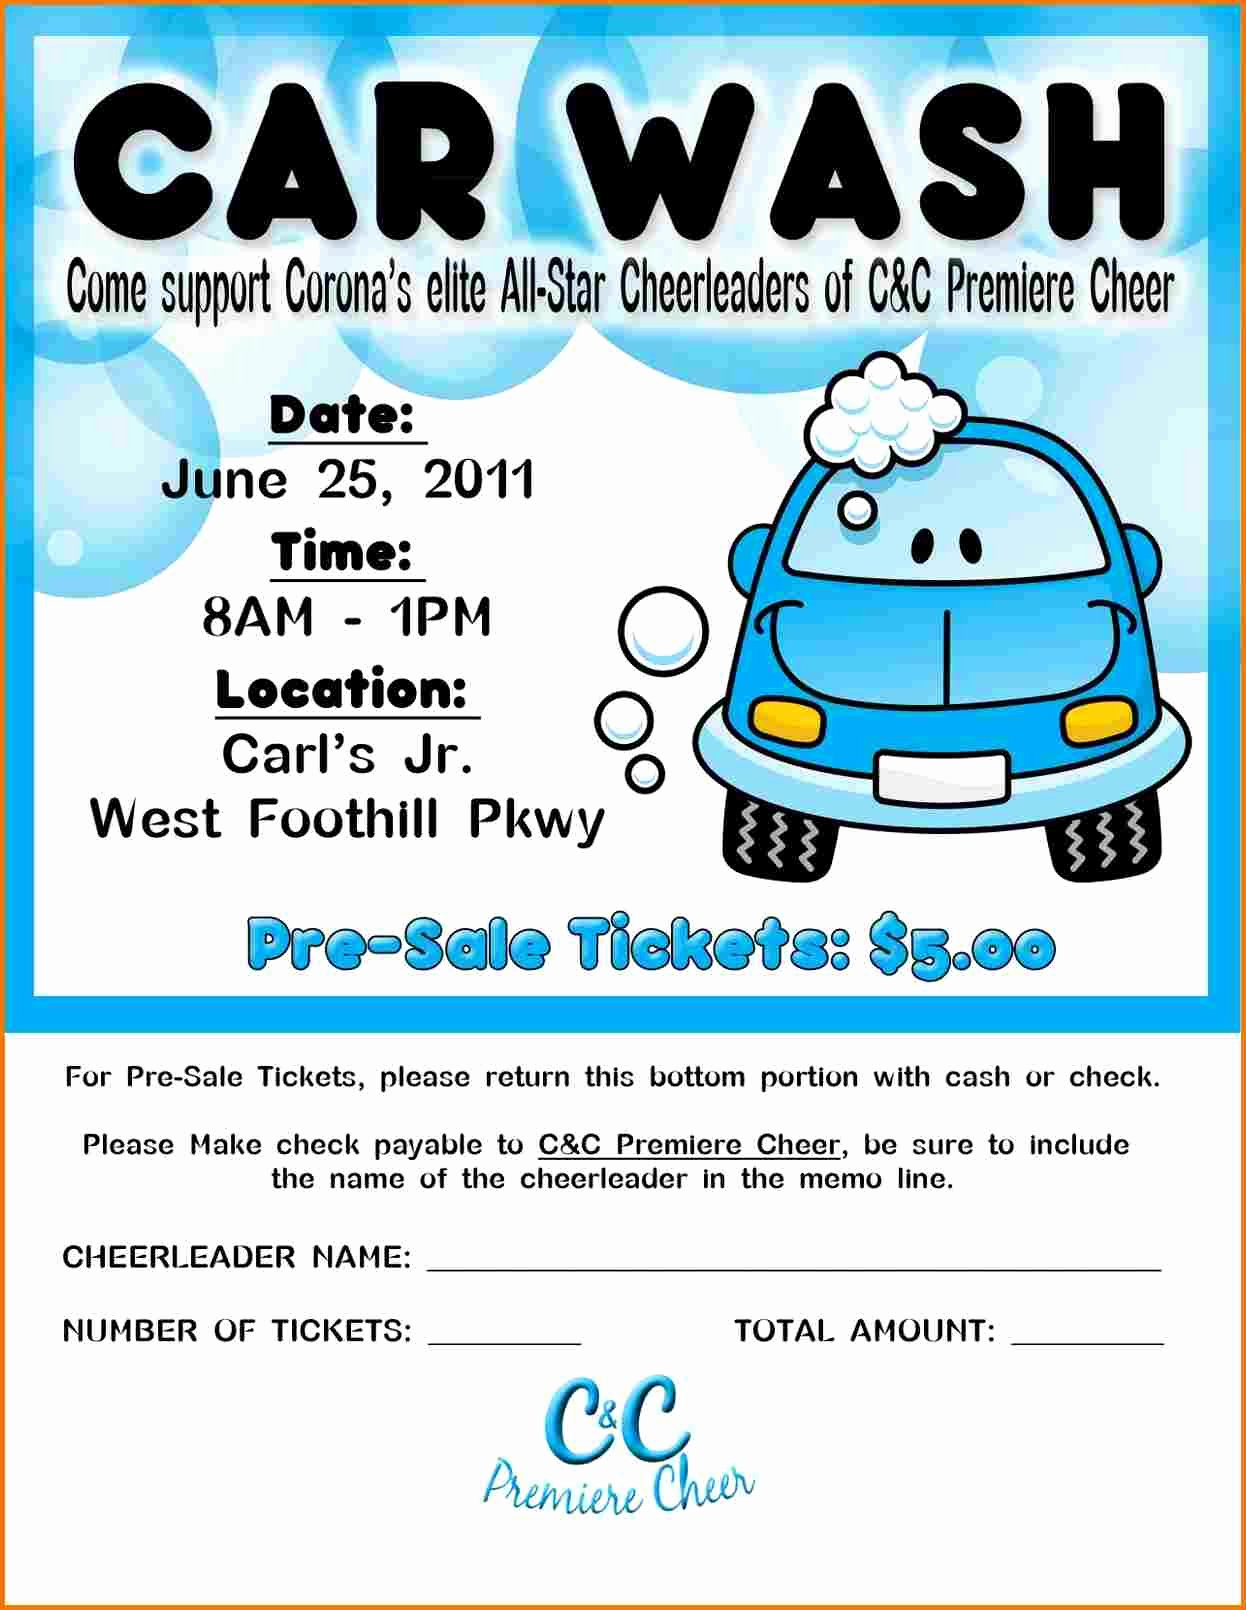 Car Wash Flyer Template Awesome Car Wash Flyer Template